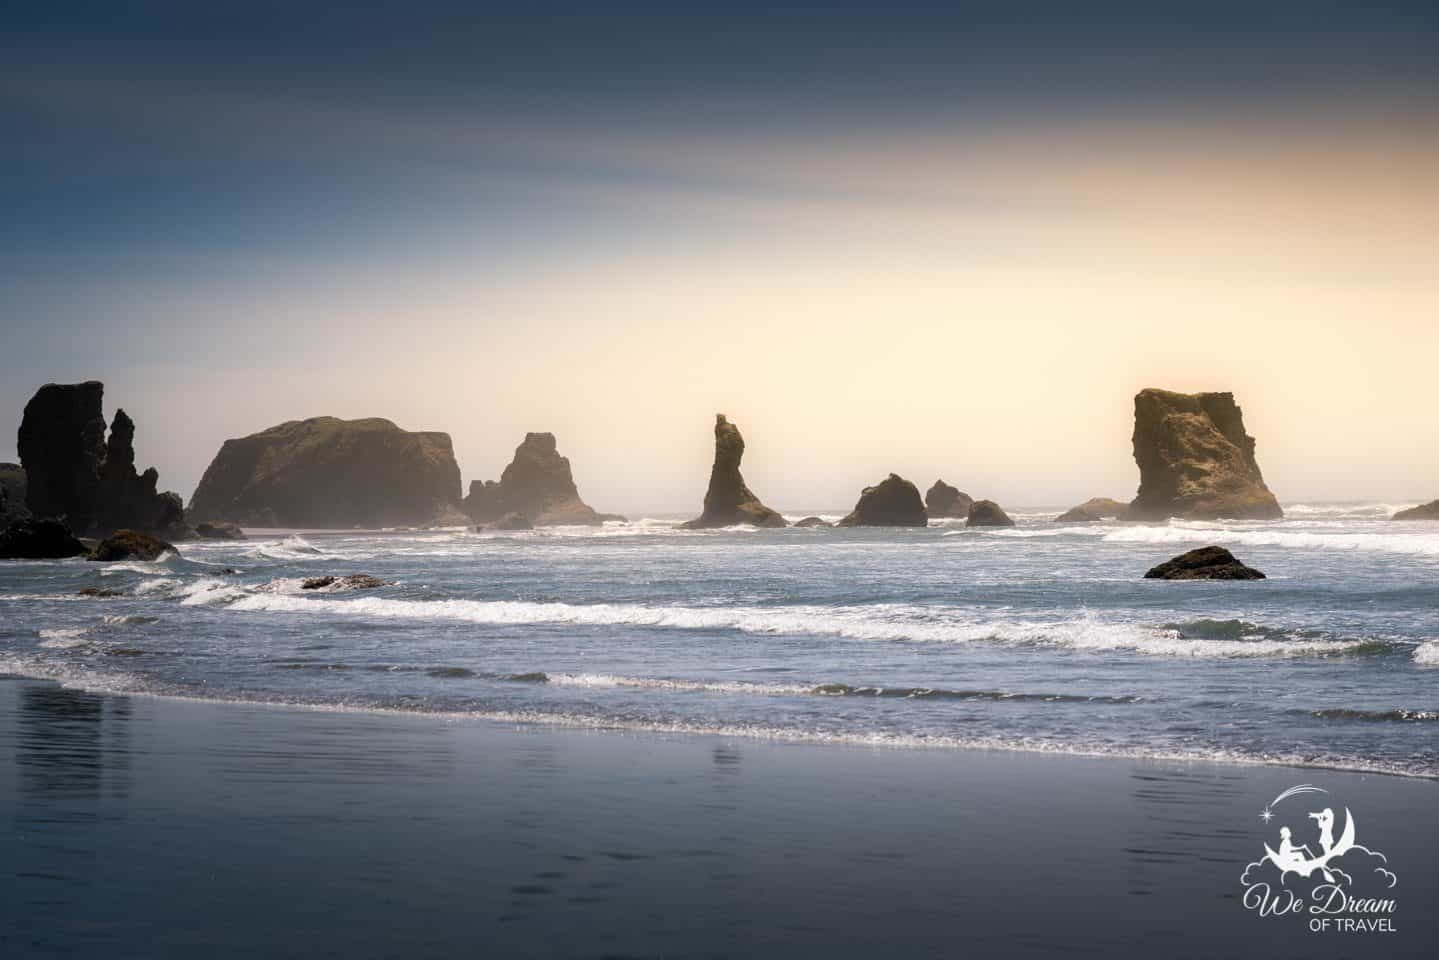 Golden hour lighting at Wizards Hat on the Bandon coastline